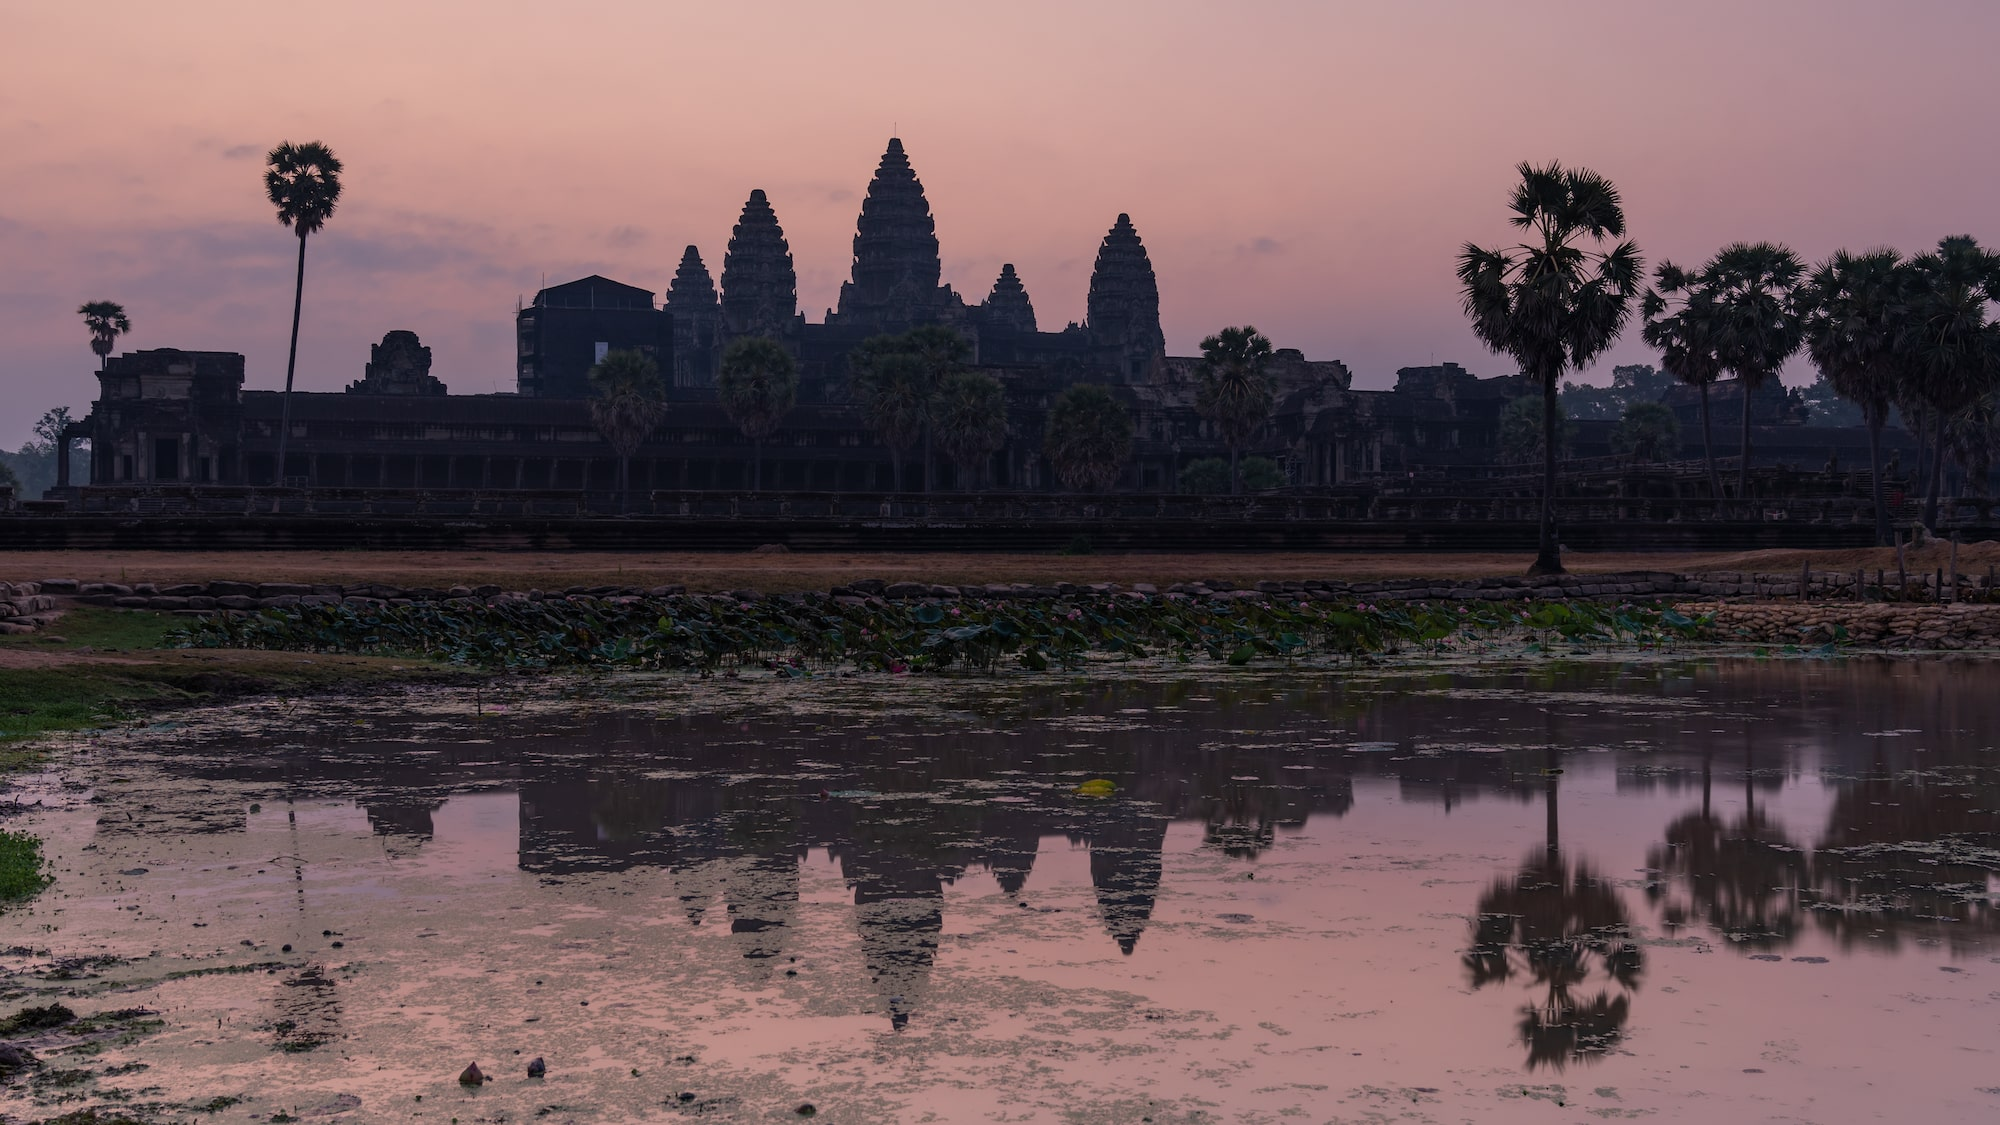 Temples and the water's reflection at sunrise in Angkor Wat